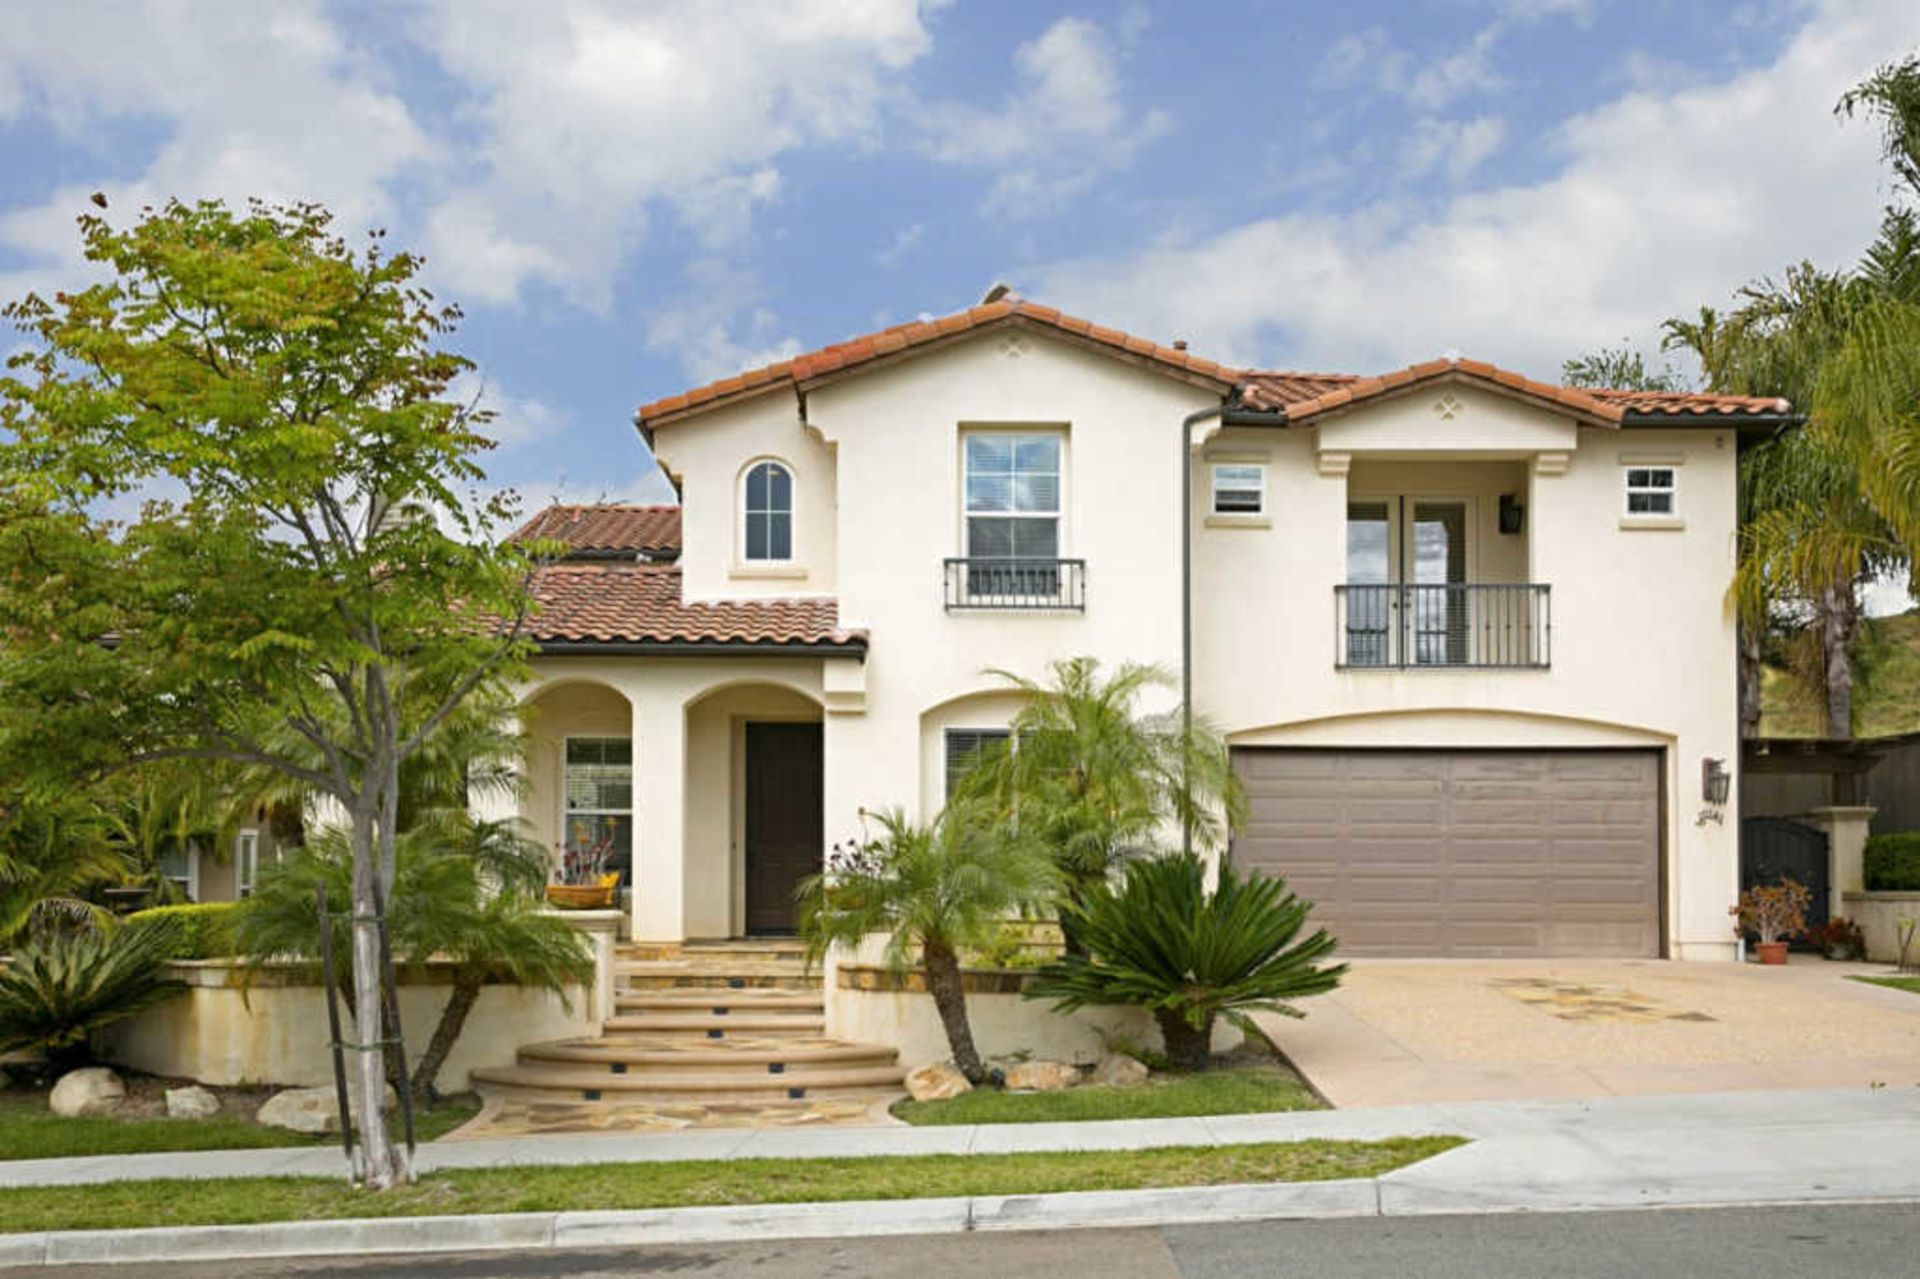 Dream Home on One of the Largest Lots in 4S Ranch / San Diego Real Estate